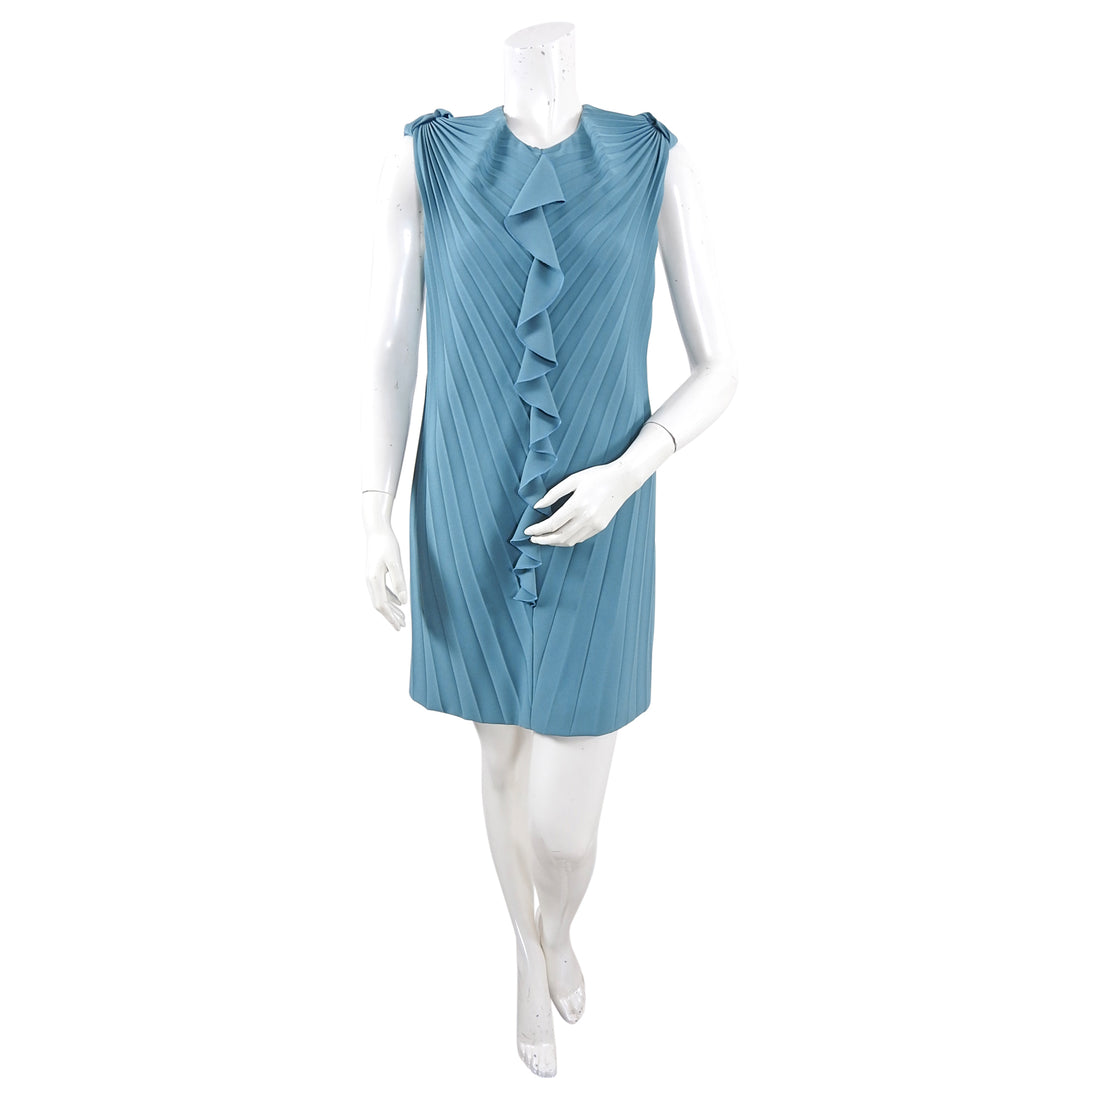 Marco di Vincenzo Blue Architectural Pleat Shift Dress - 8